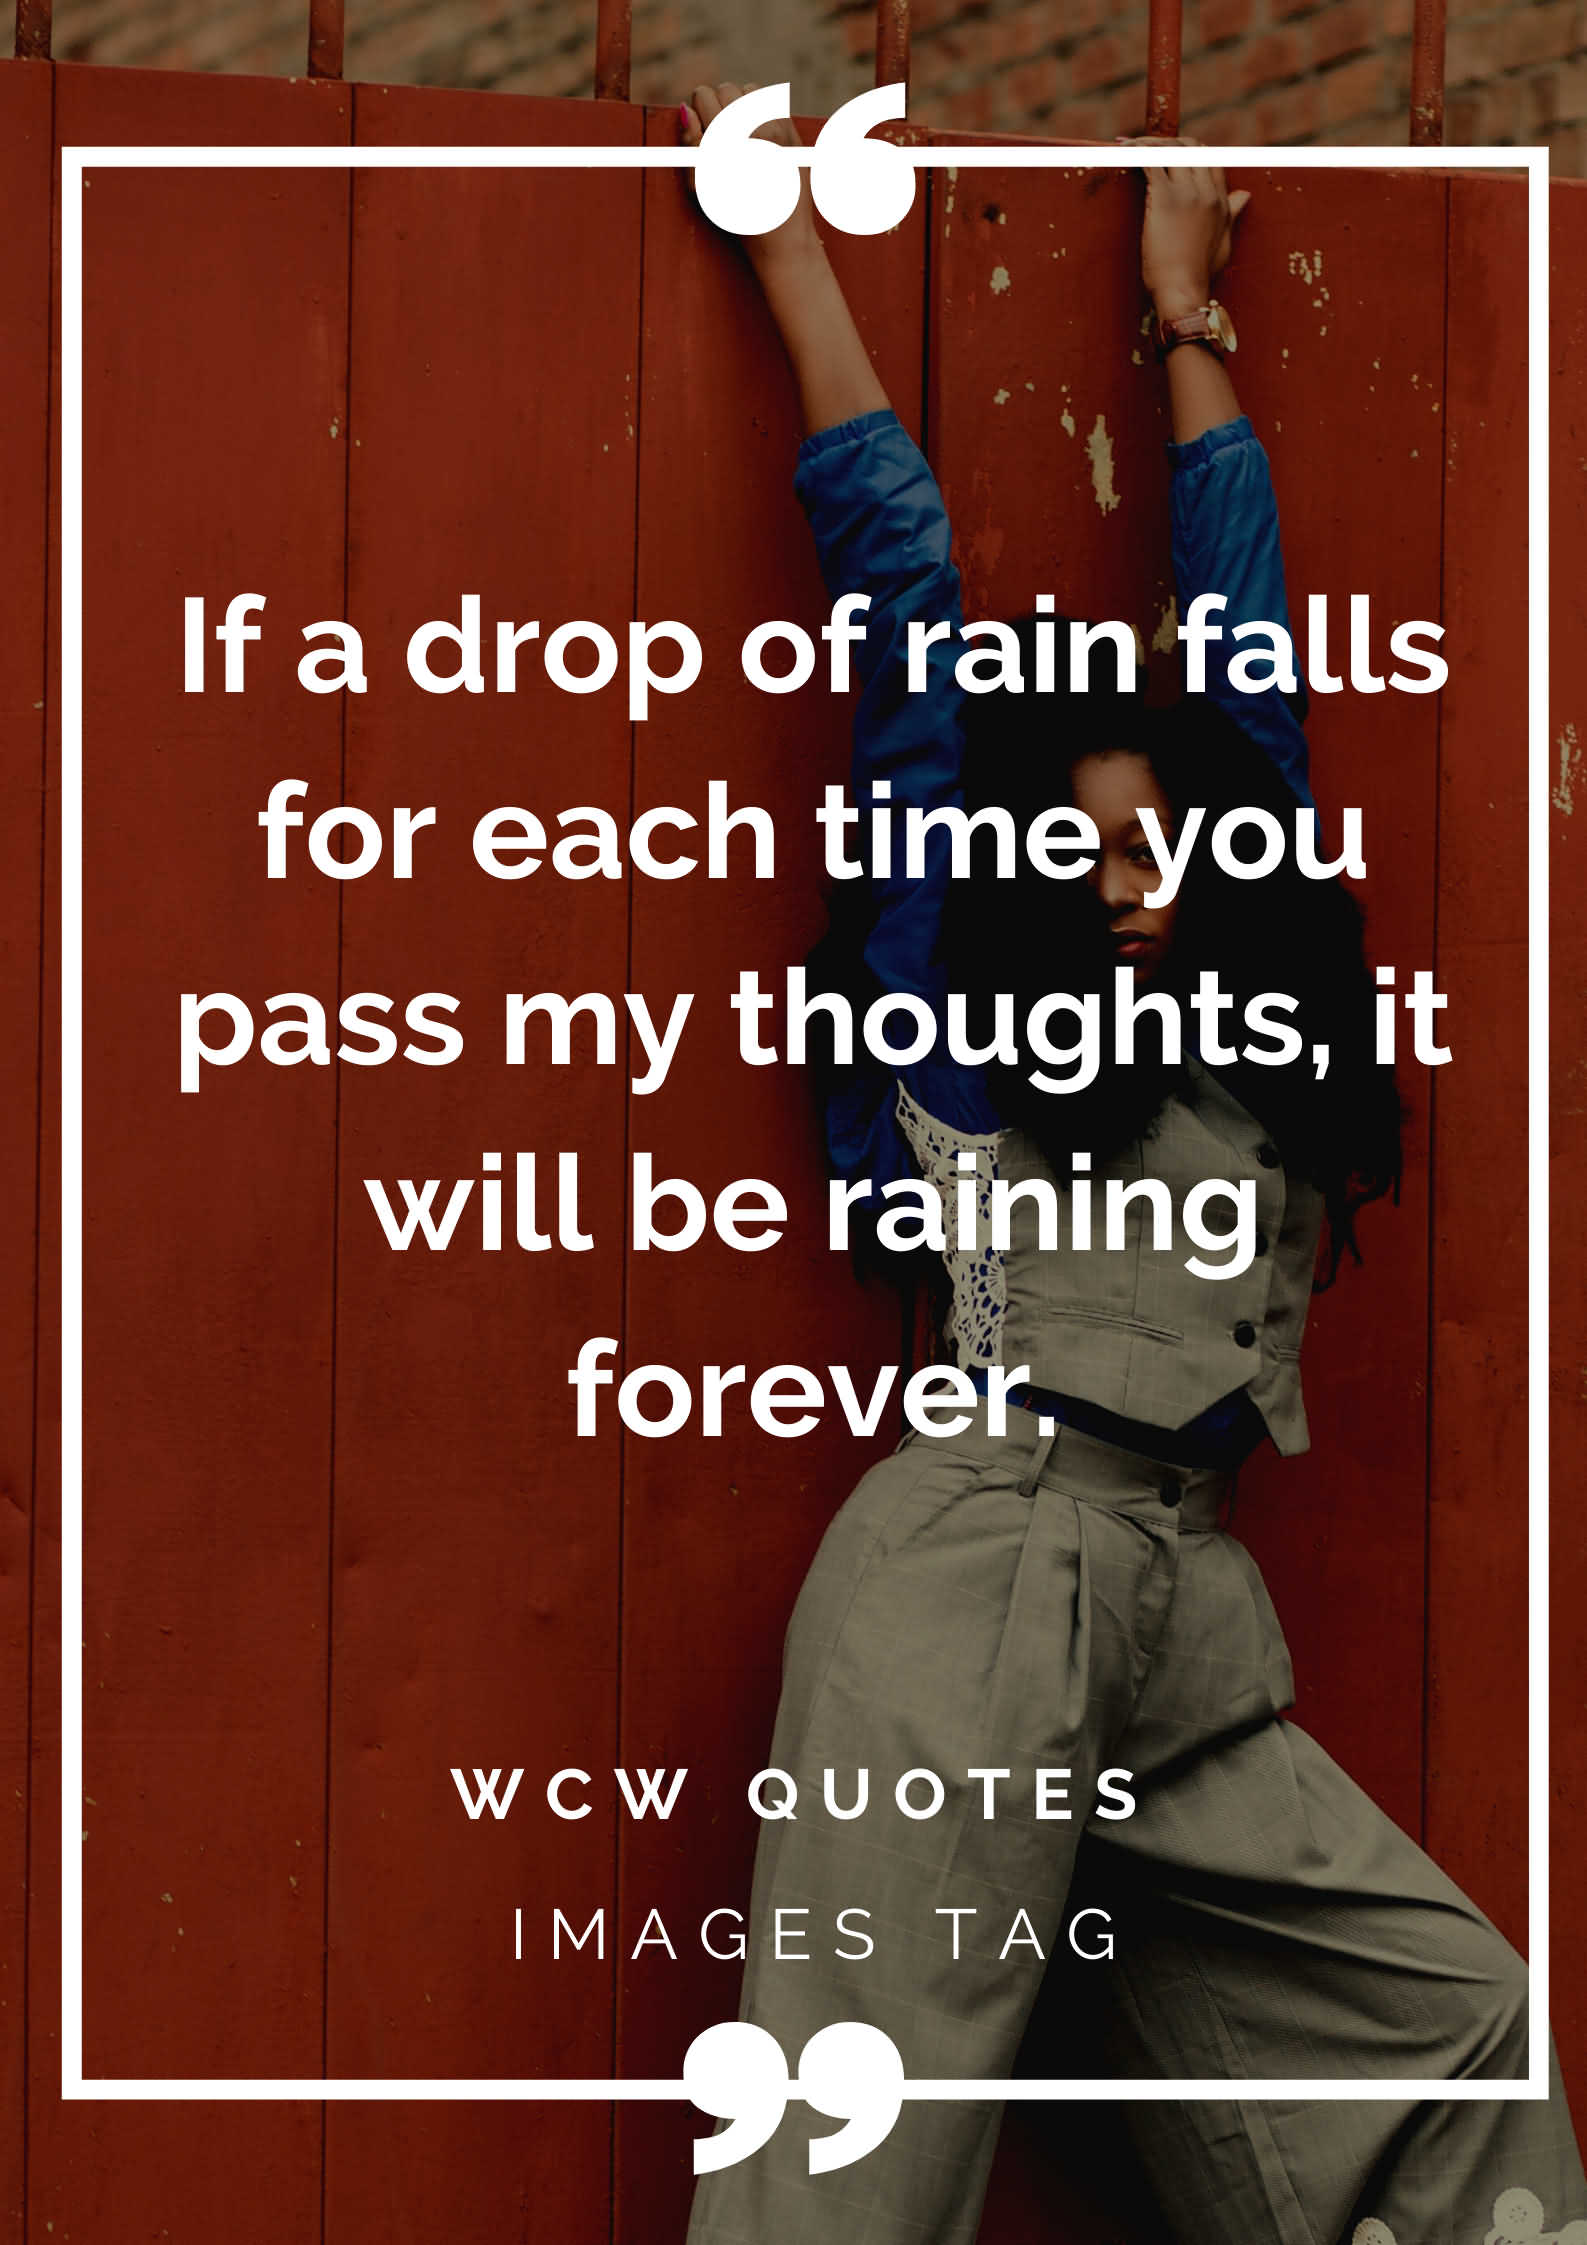 If A Drop Of Rain Falls For Each Time You Pass My Thoughts It Will Be Raining Forever.wcw Quotes For Wife